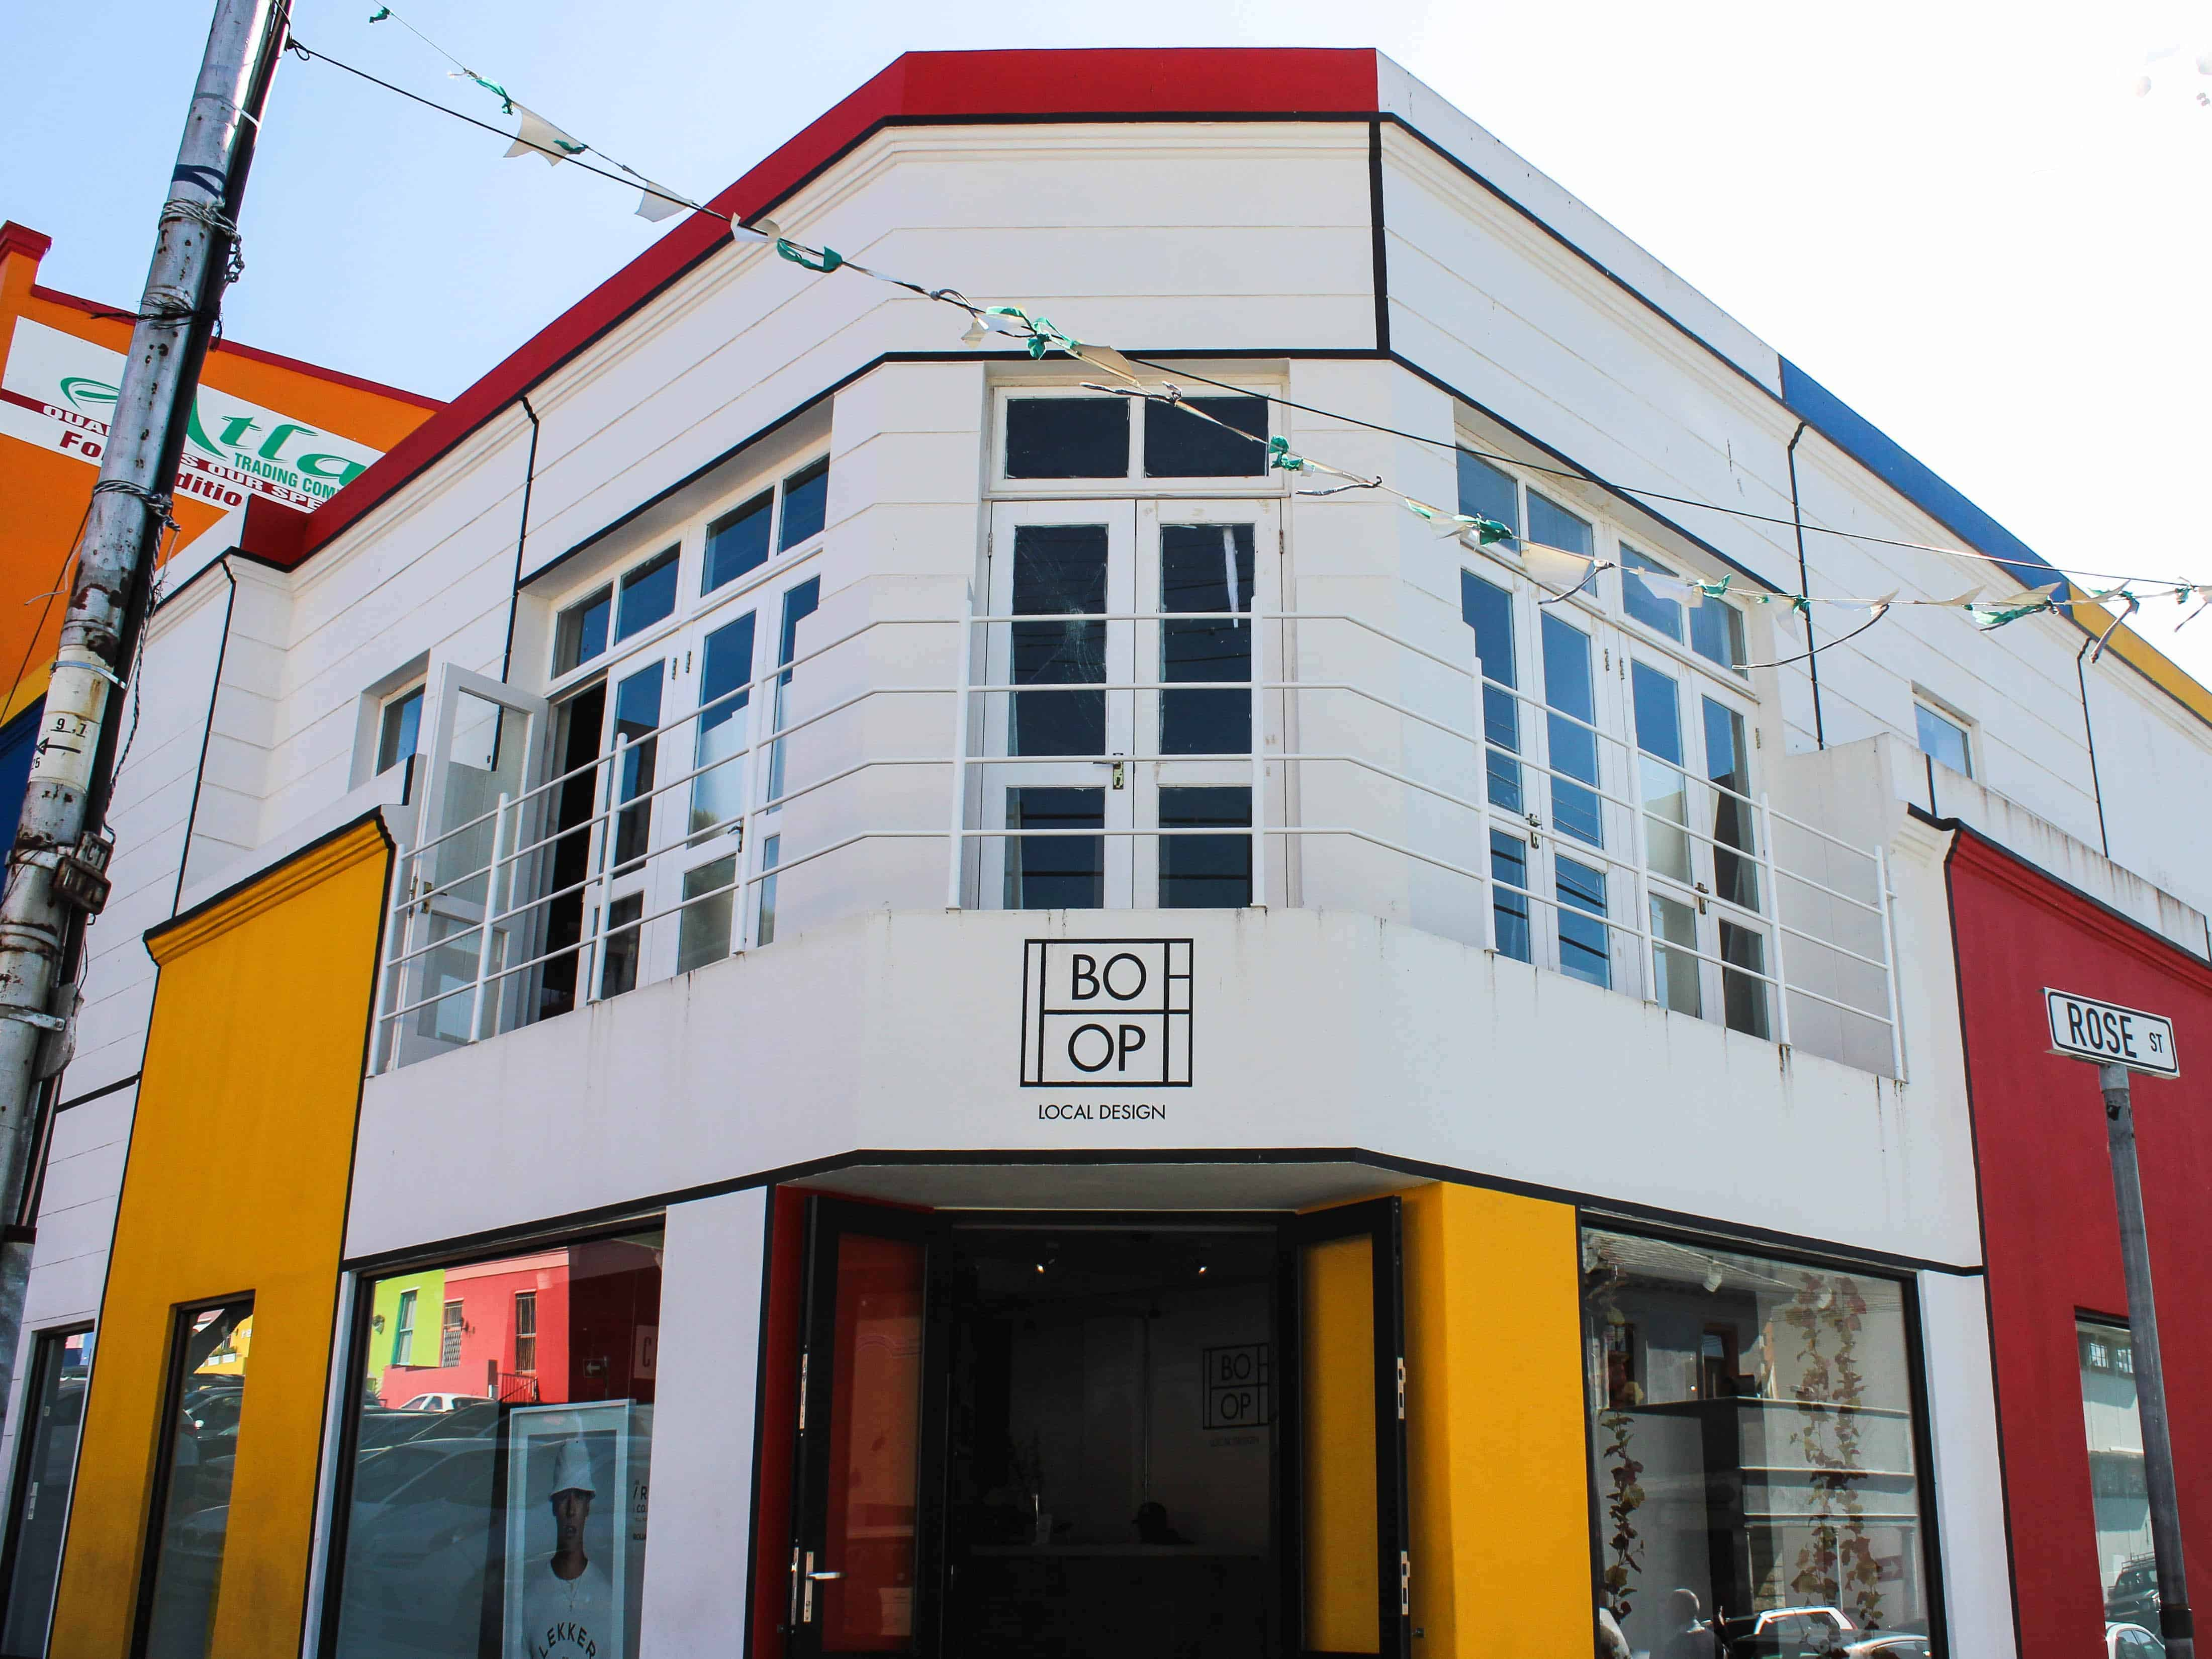 Bo-Op local designer collective in the Bo-Kaap